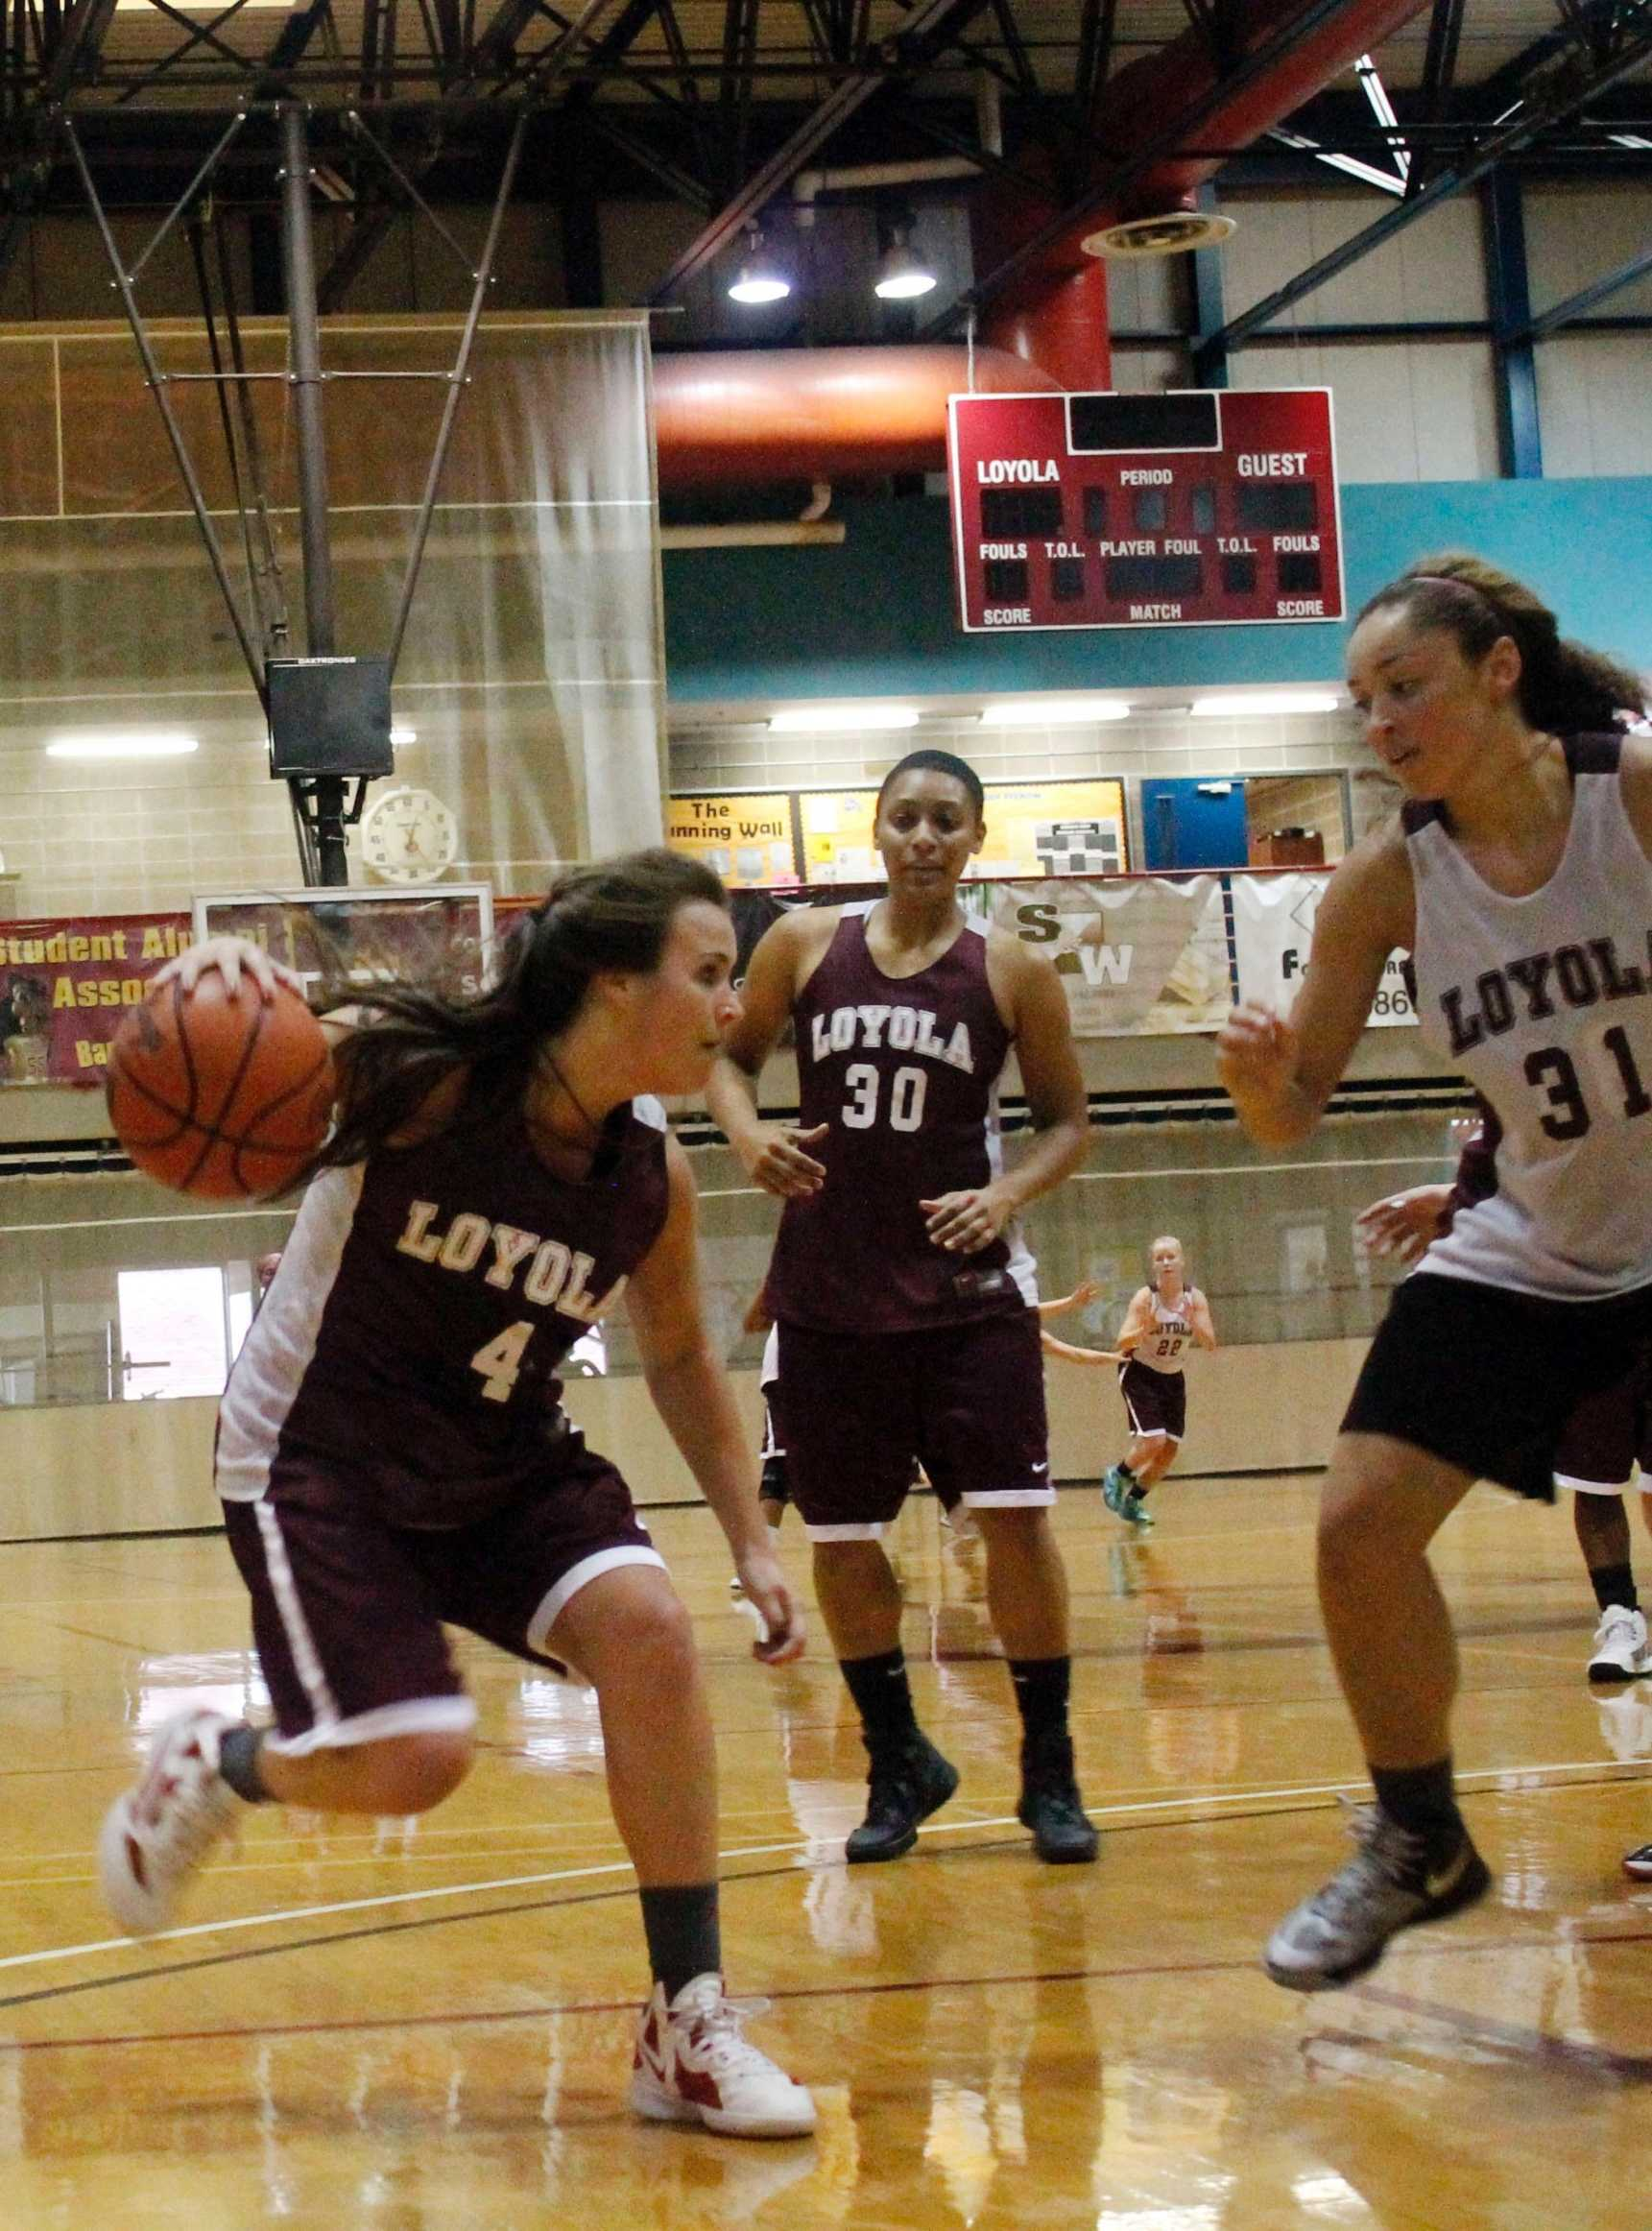 Accounting junior Megan Whittaker drives the lane at practicing with teammates Shayne Charles chemestry junior (30) and biology freshman Jackie Anderson (31) . Whittaker will play for Loyola this season  after playing two seasons with the Louisiana at Lafayette.